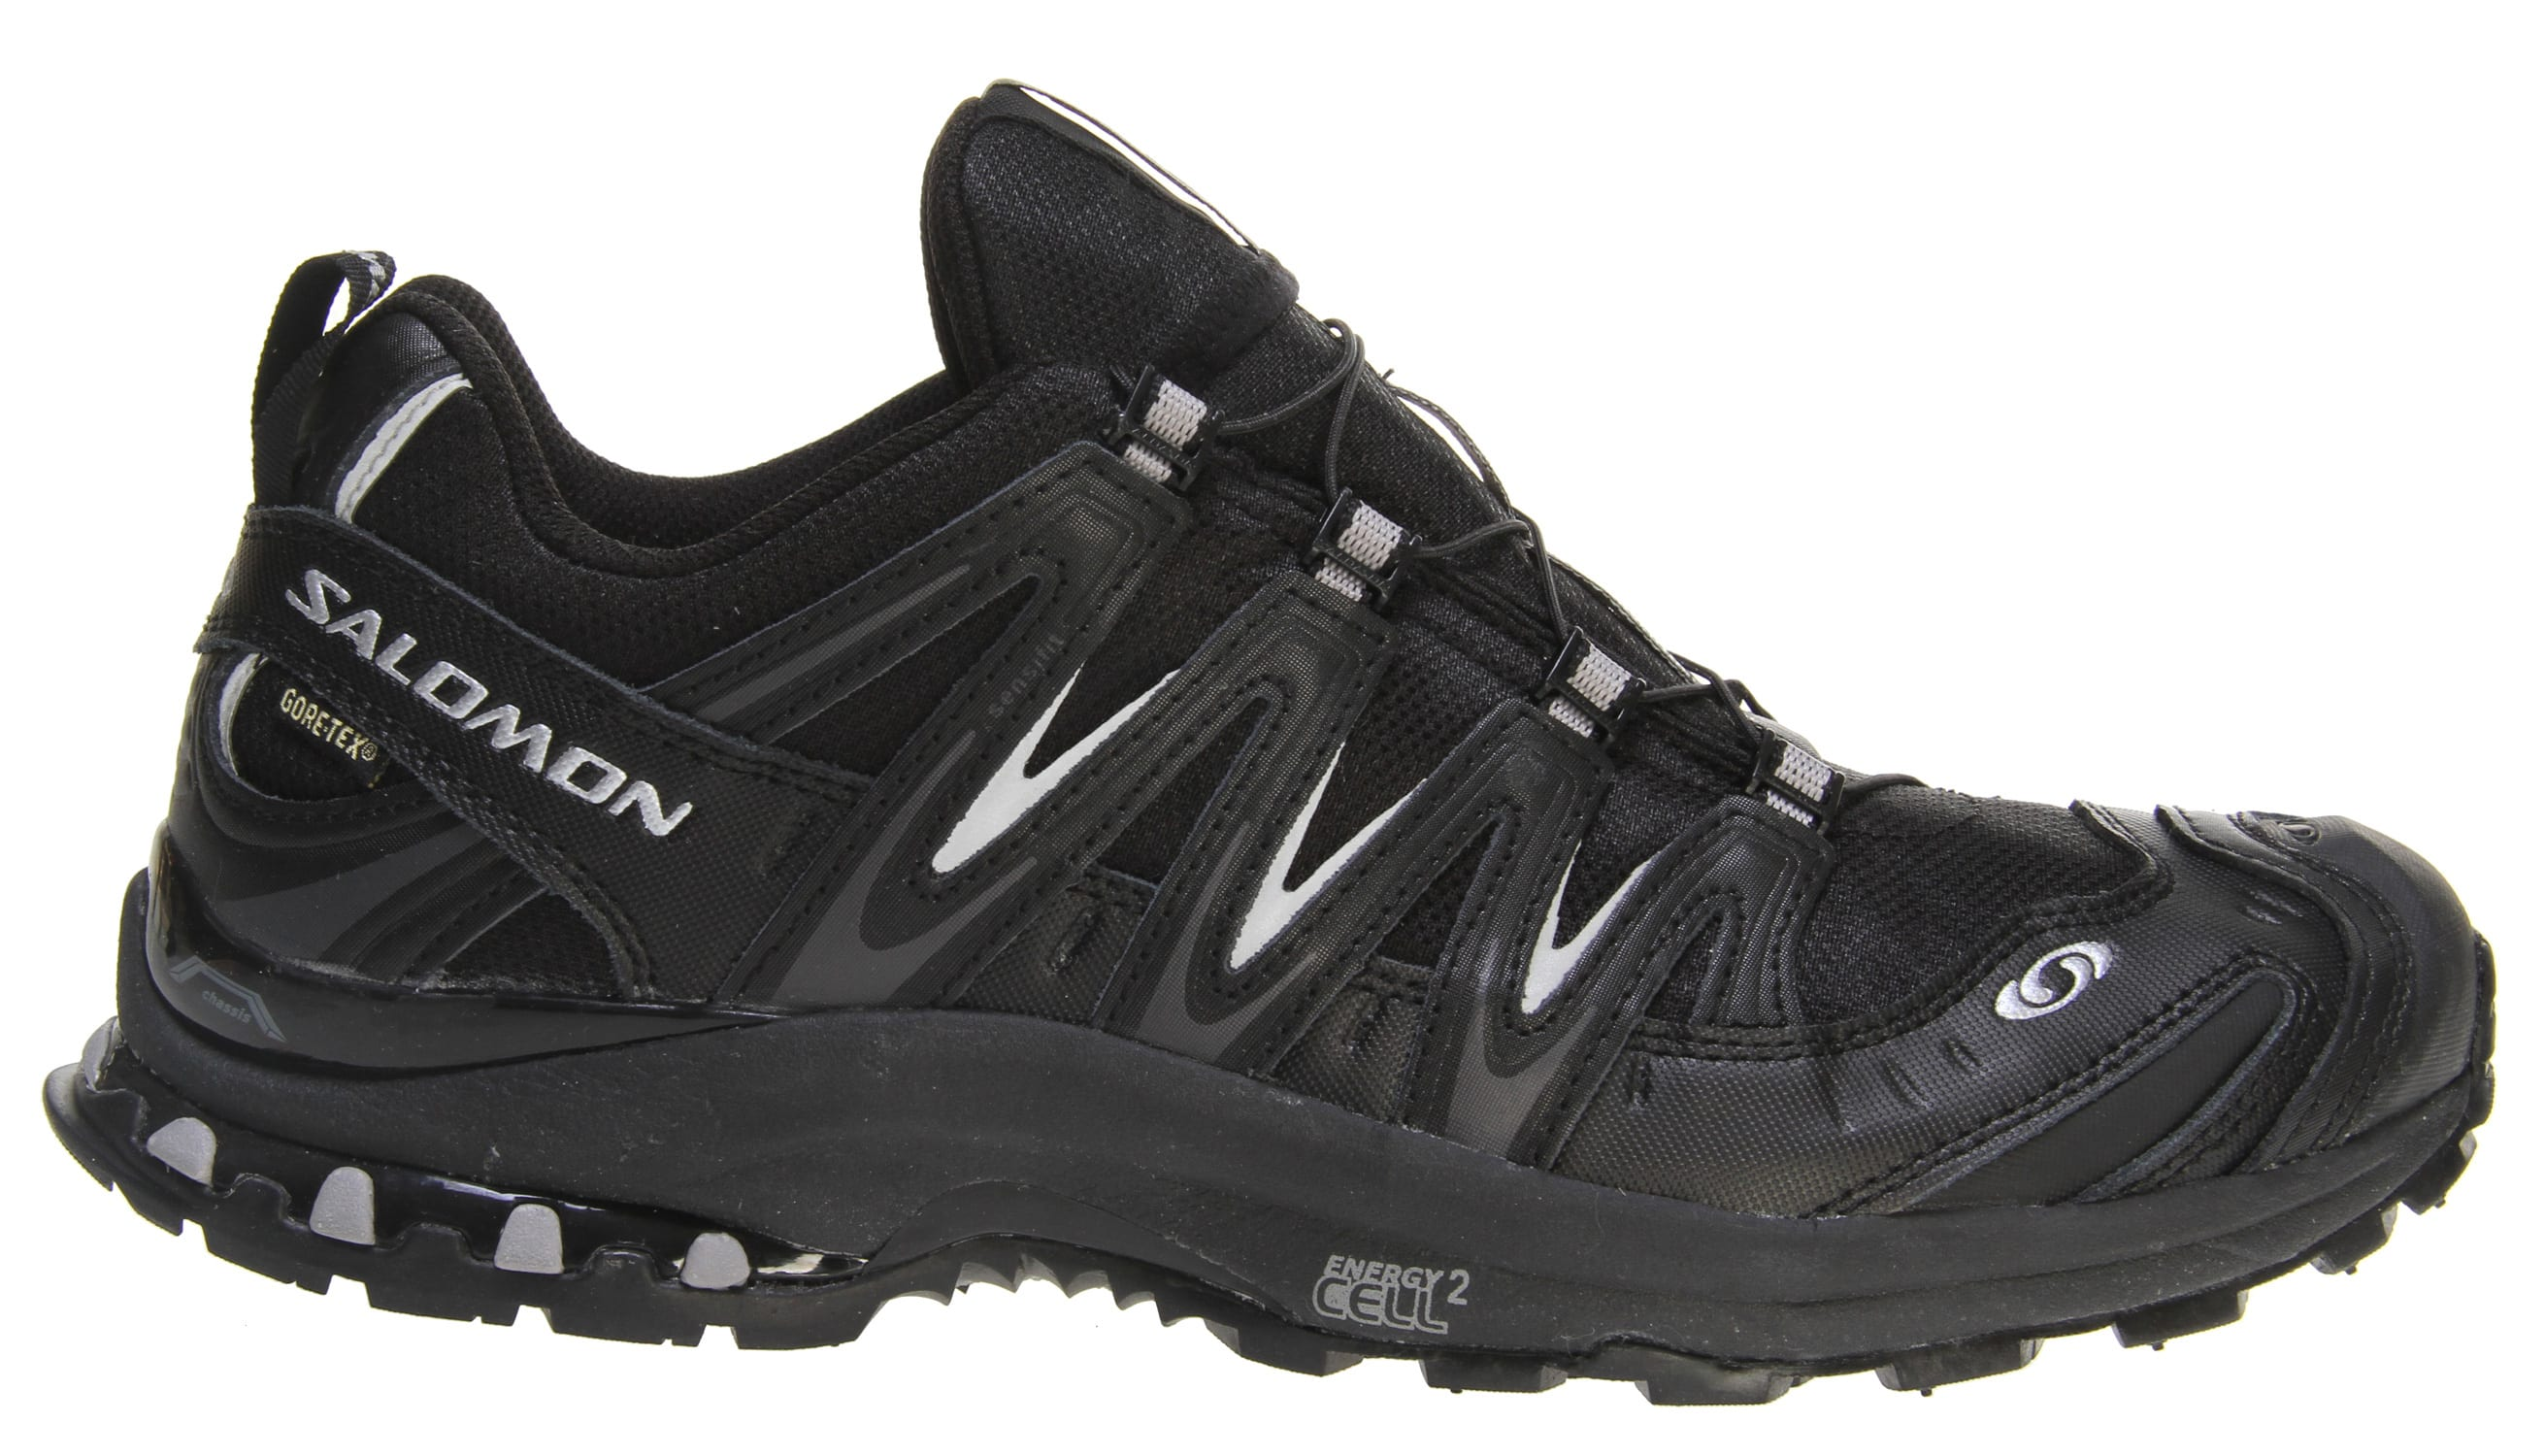 on sale salomon xa pro 3d ultra 2 gtx hiking shoes up to 65 off. Black Bedroom Furniture Sets. Home Design Ideas